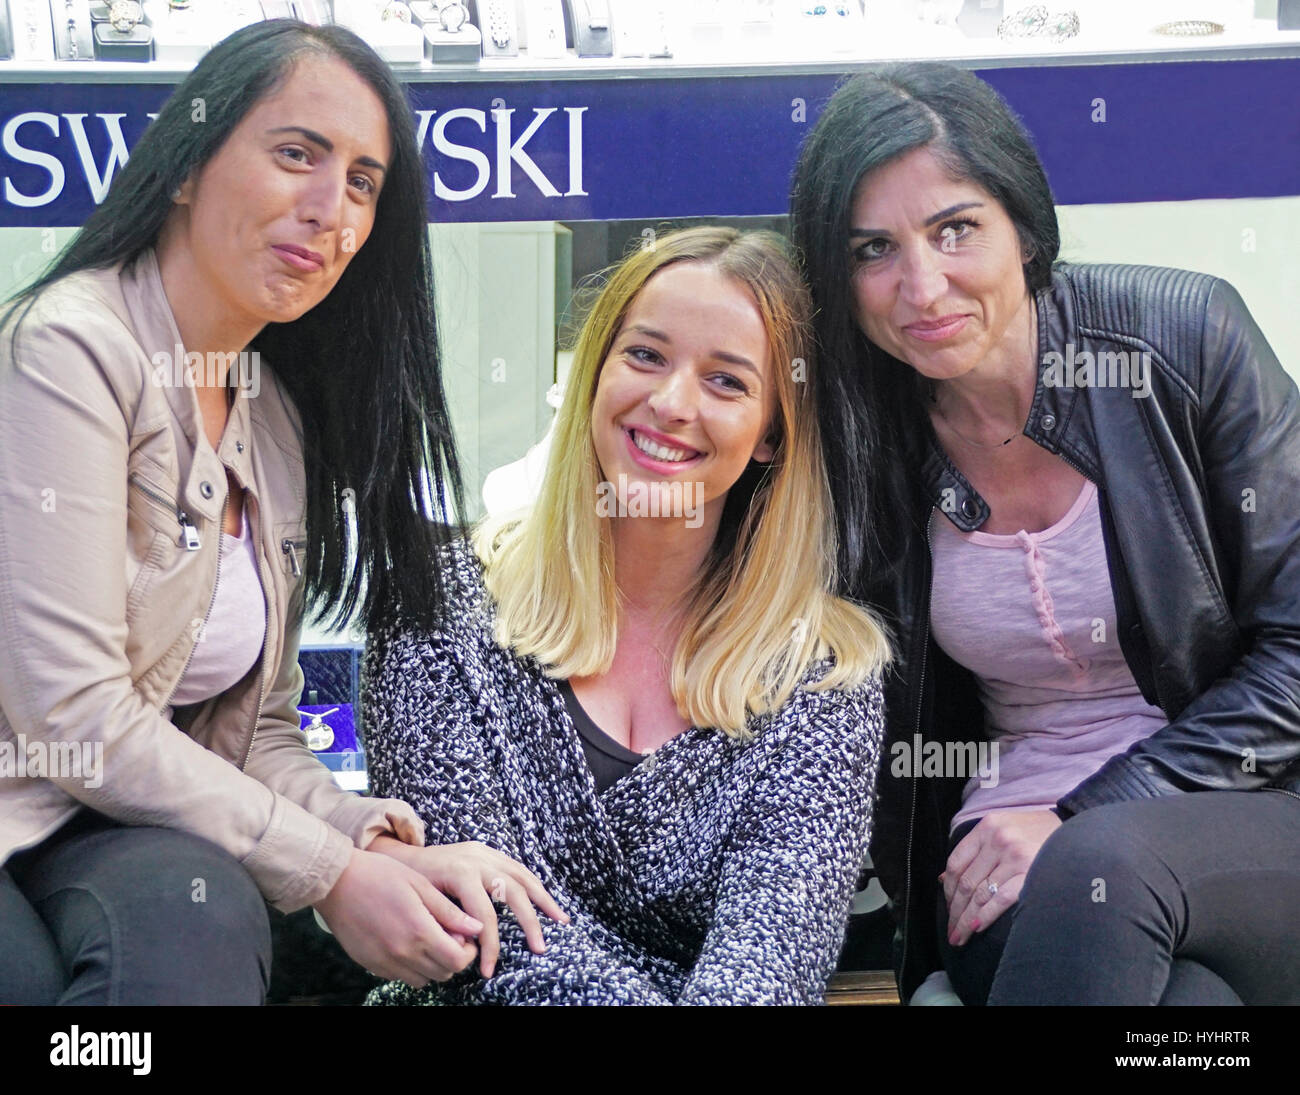 Three women friends on shopping street, Peja, Kosovo. - Stock Image